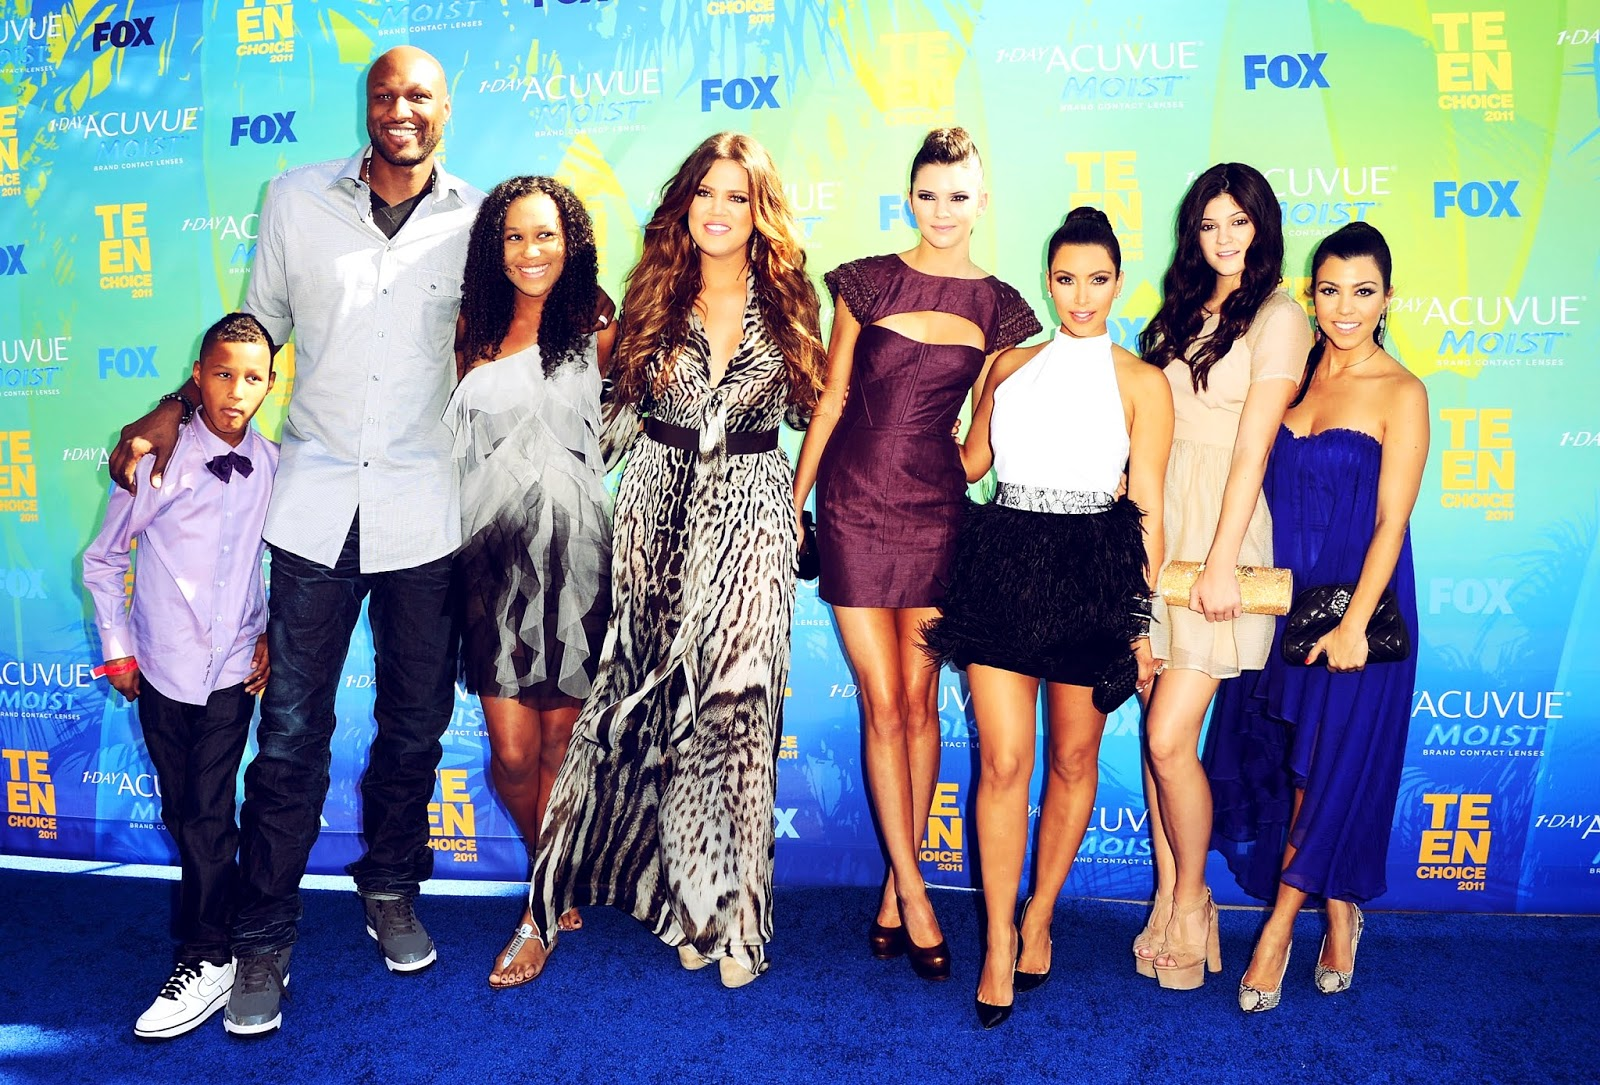 40 - Teen Choice Awards in August 11, 2011